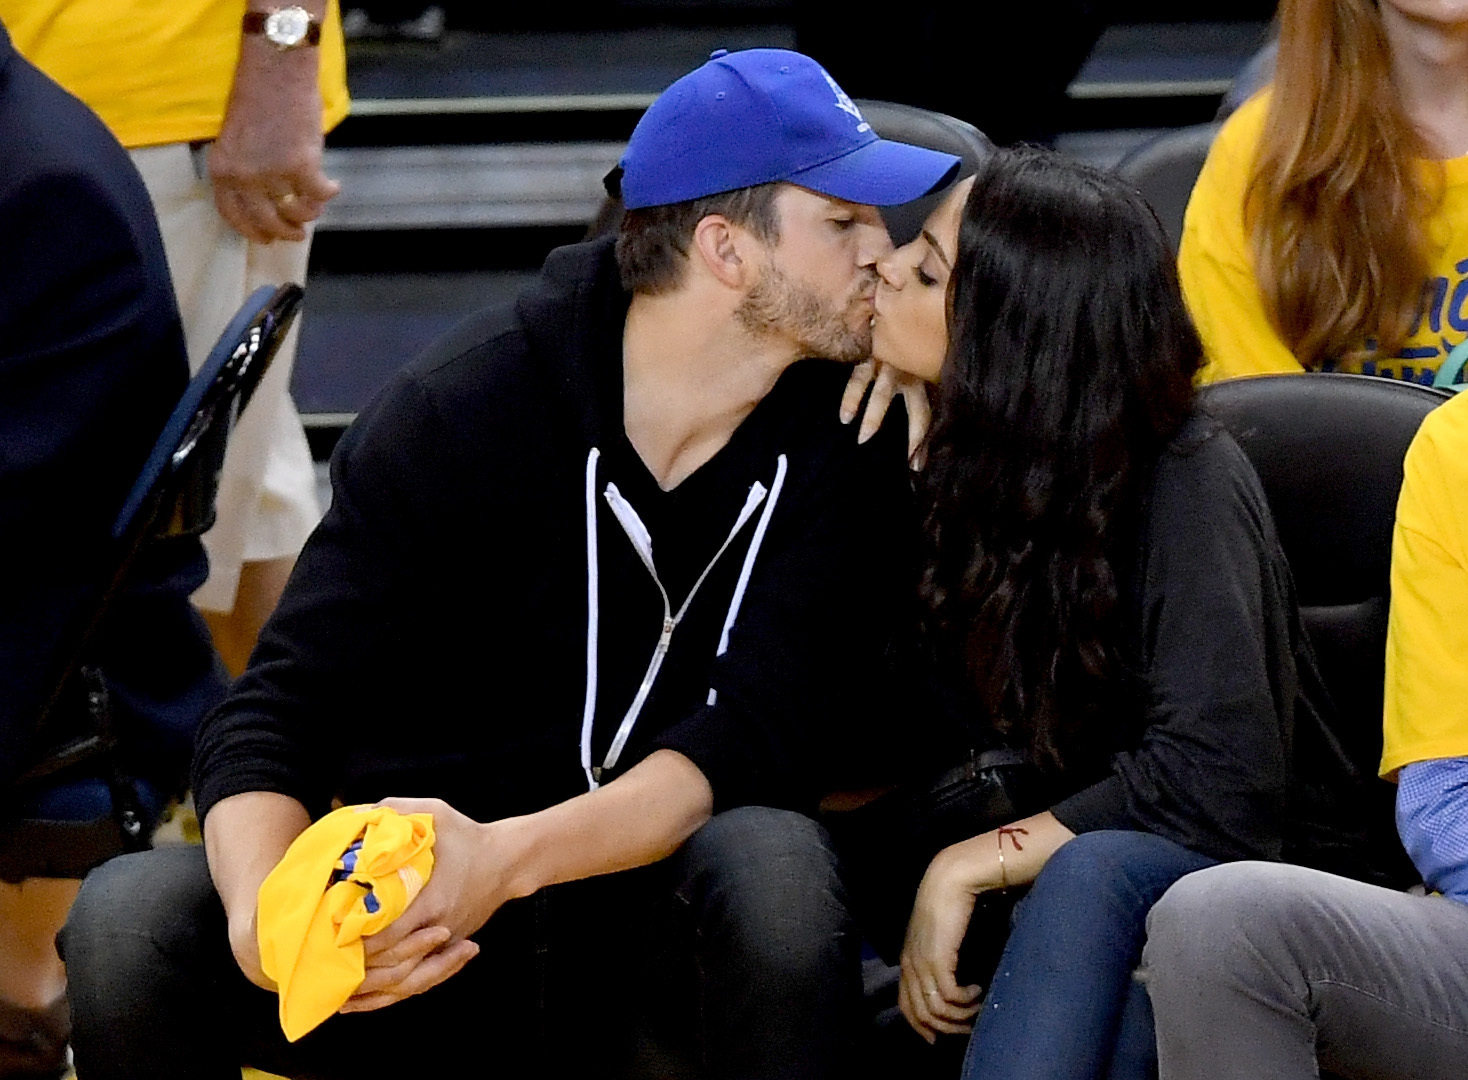 Ashton Kutcher 'dotes' on pregnant Mila Kunis